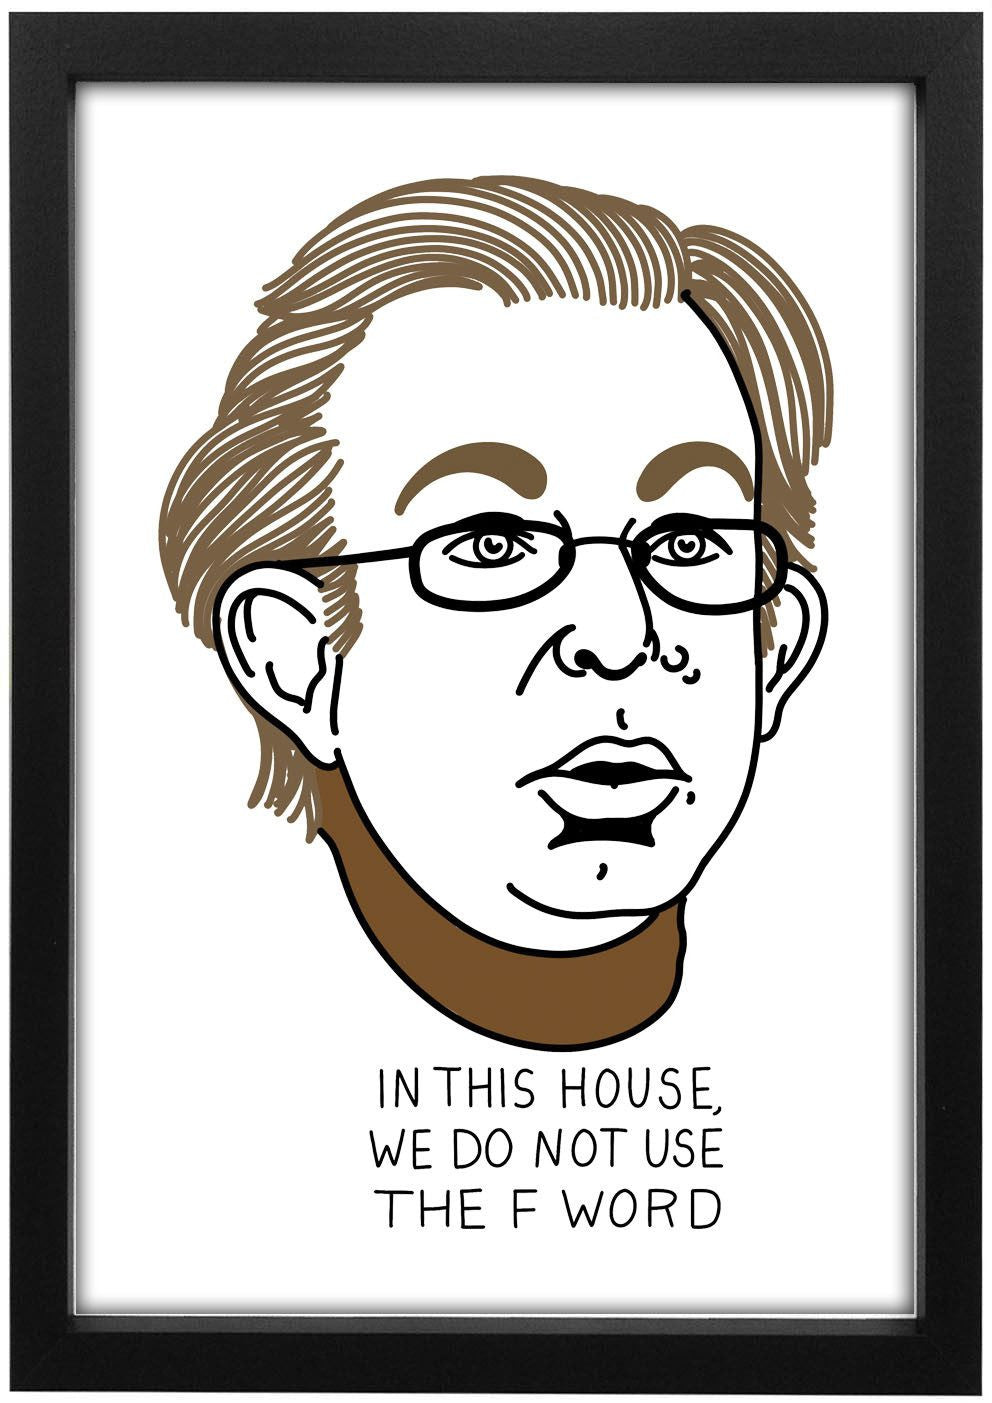 League Of Gentlemen - F Word Art Print - Jiggle Apparel